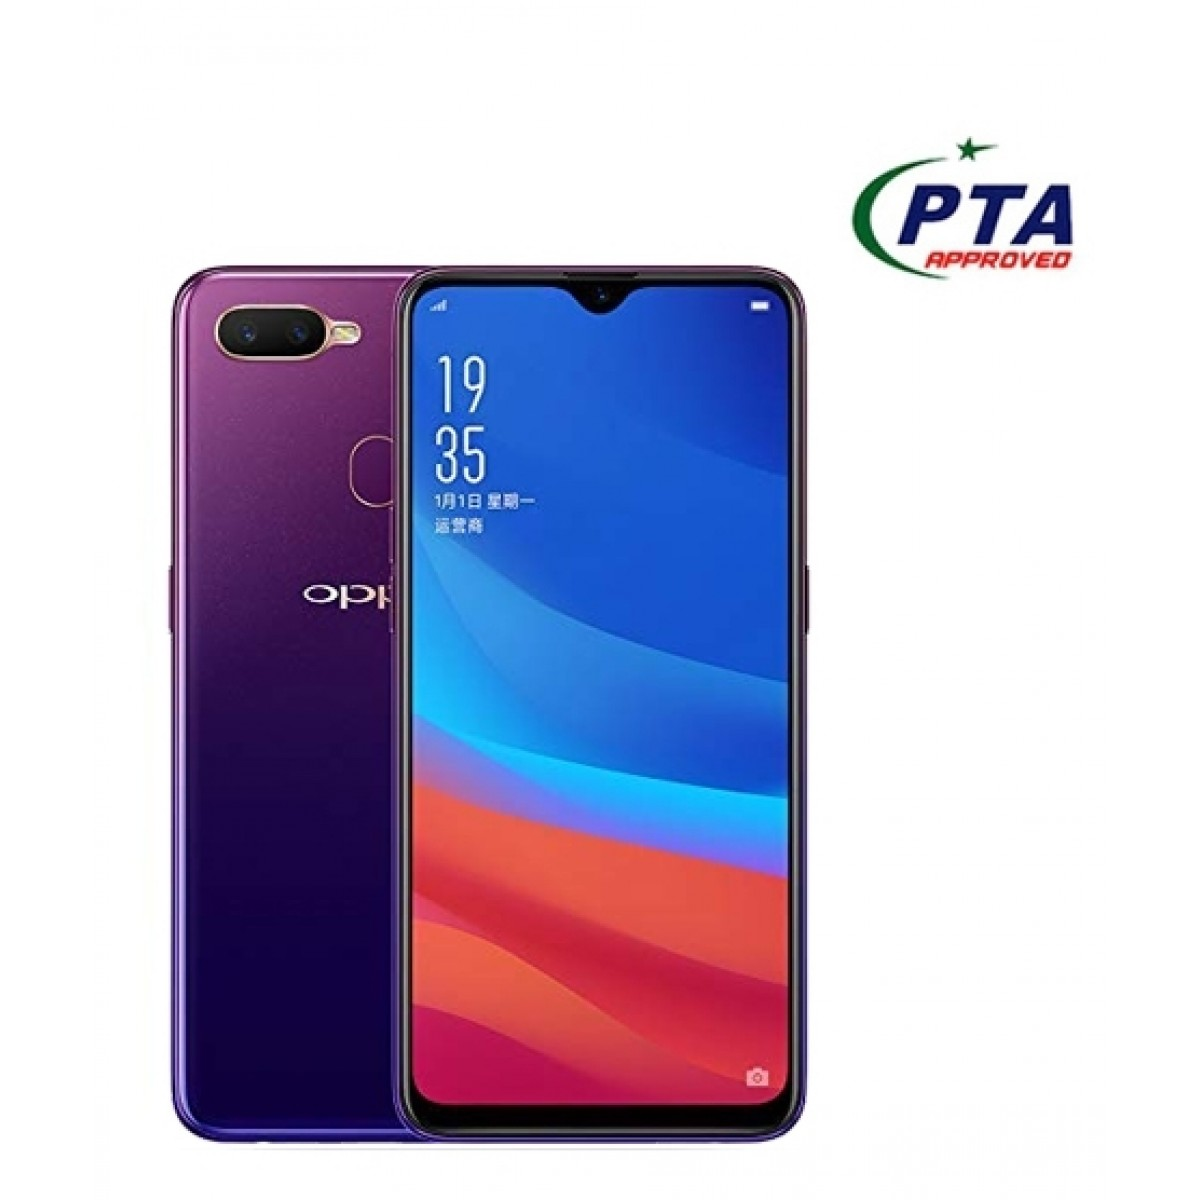 Oppo F9 64GB Dual Sim Starry Purple